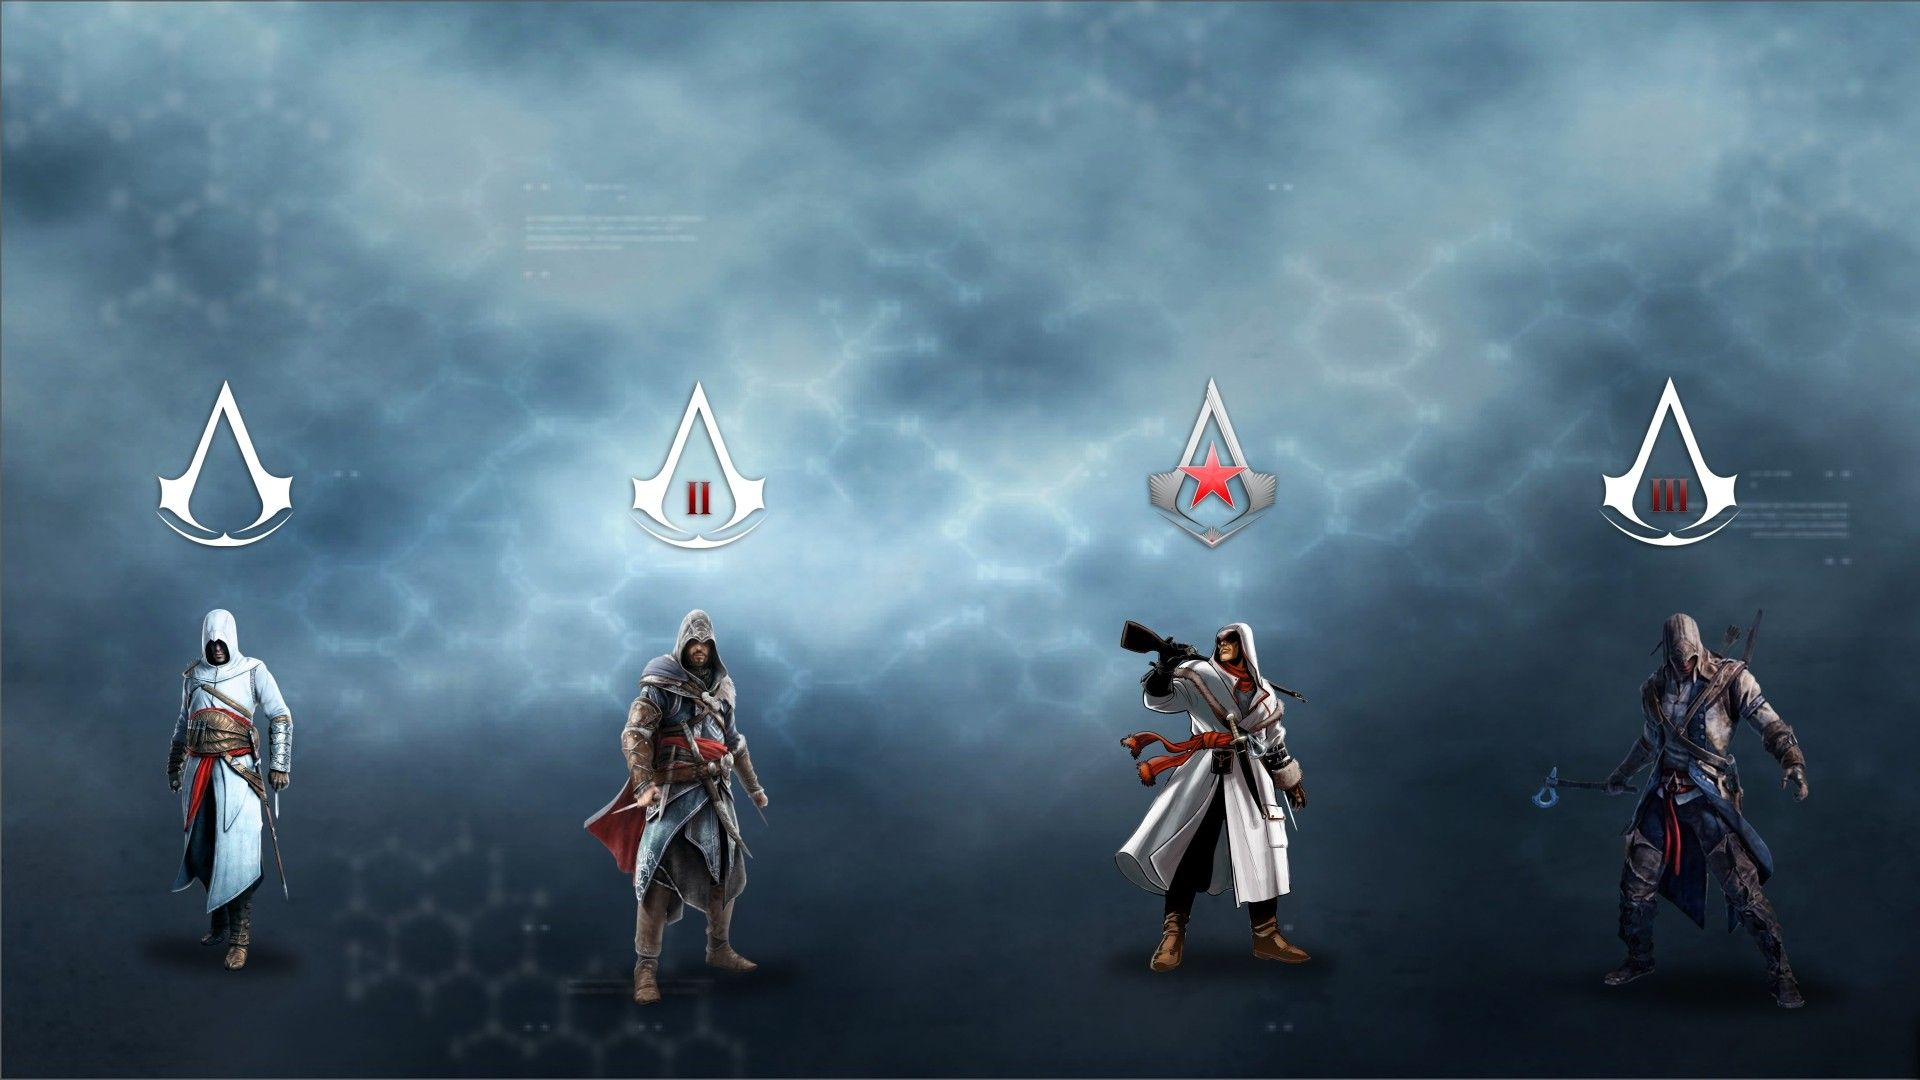 Assasinaposs Creed Generation Wallpaper Desktop